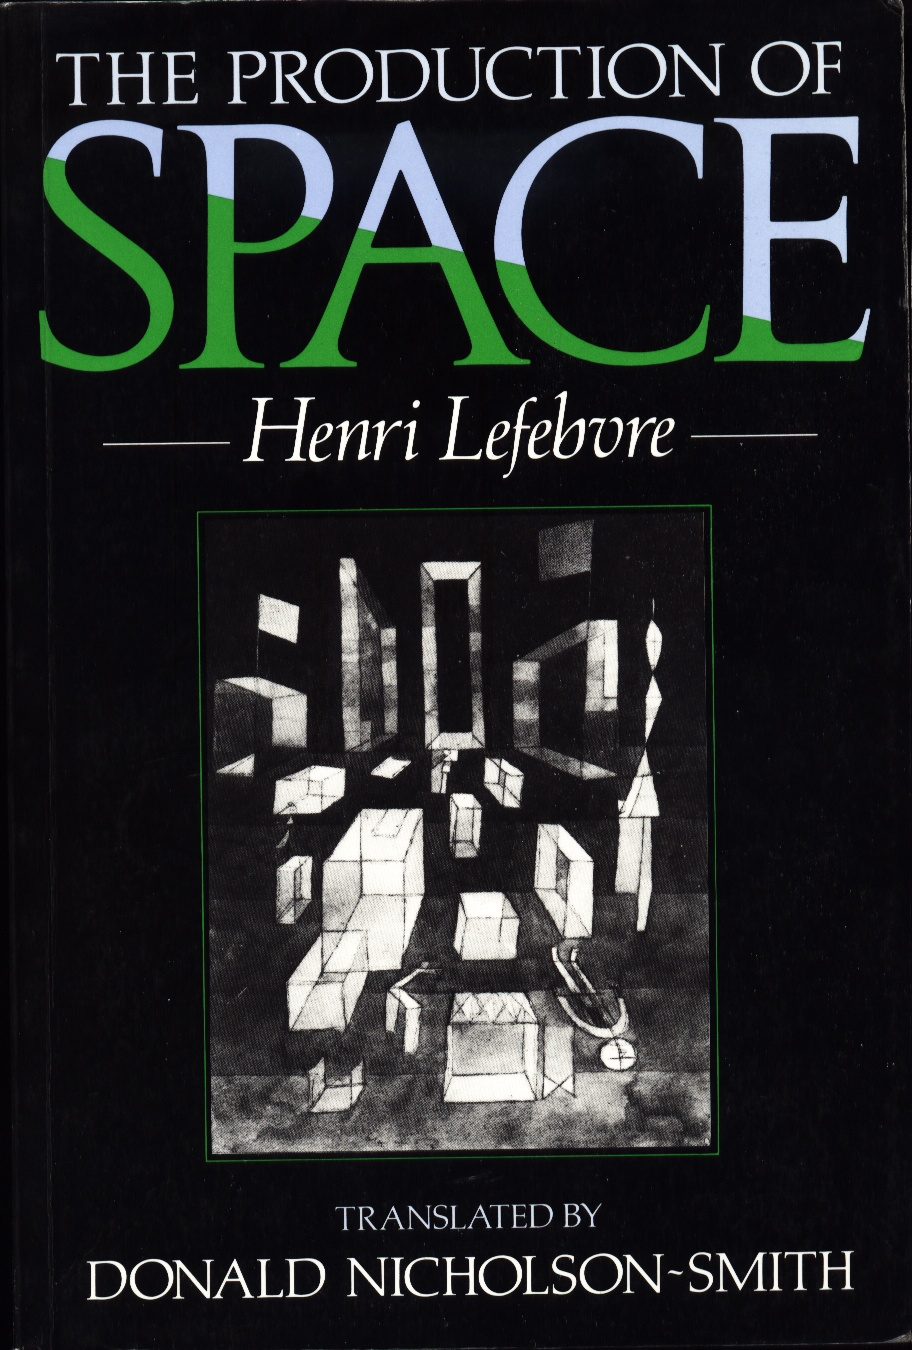 henri lefebvre 1974 the production of space.jpg